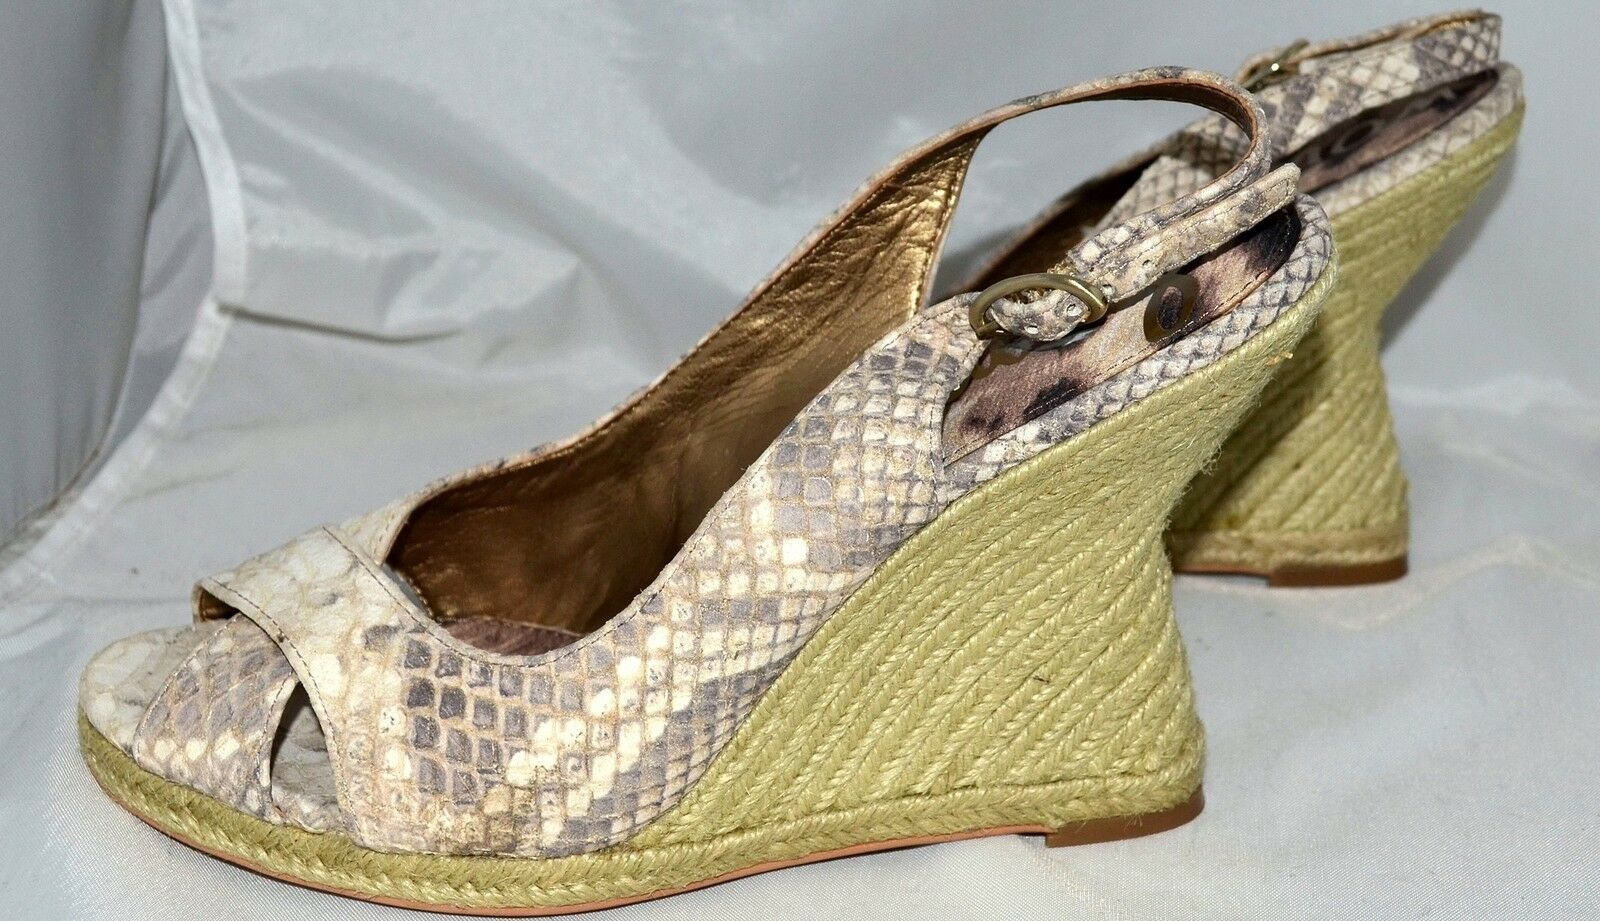 Sam Edelman Arianna Snake Embossed Leather Womens Slingback Wedge shoes Sz 9.5 M